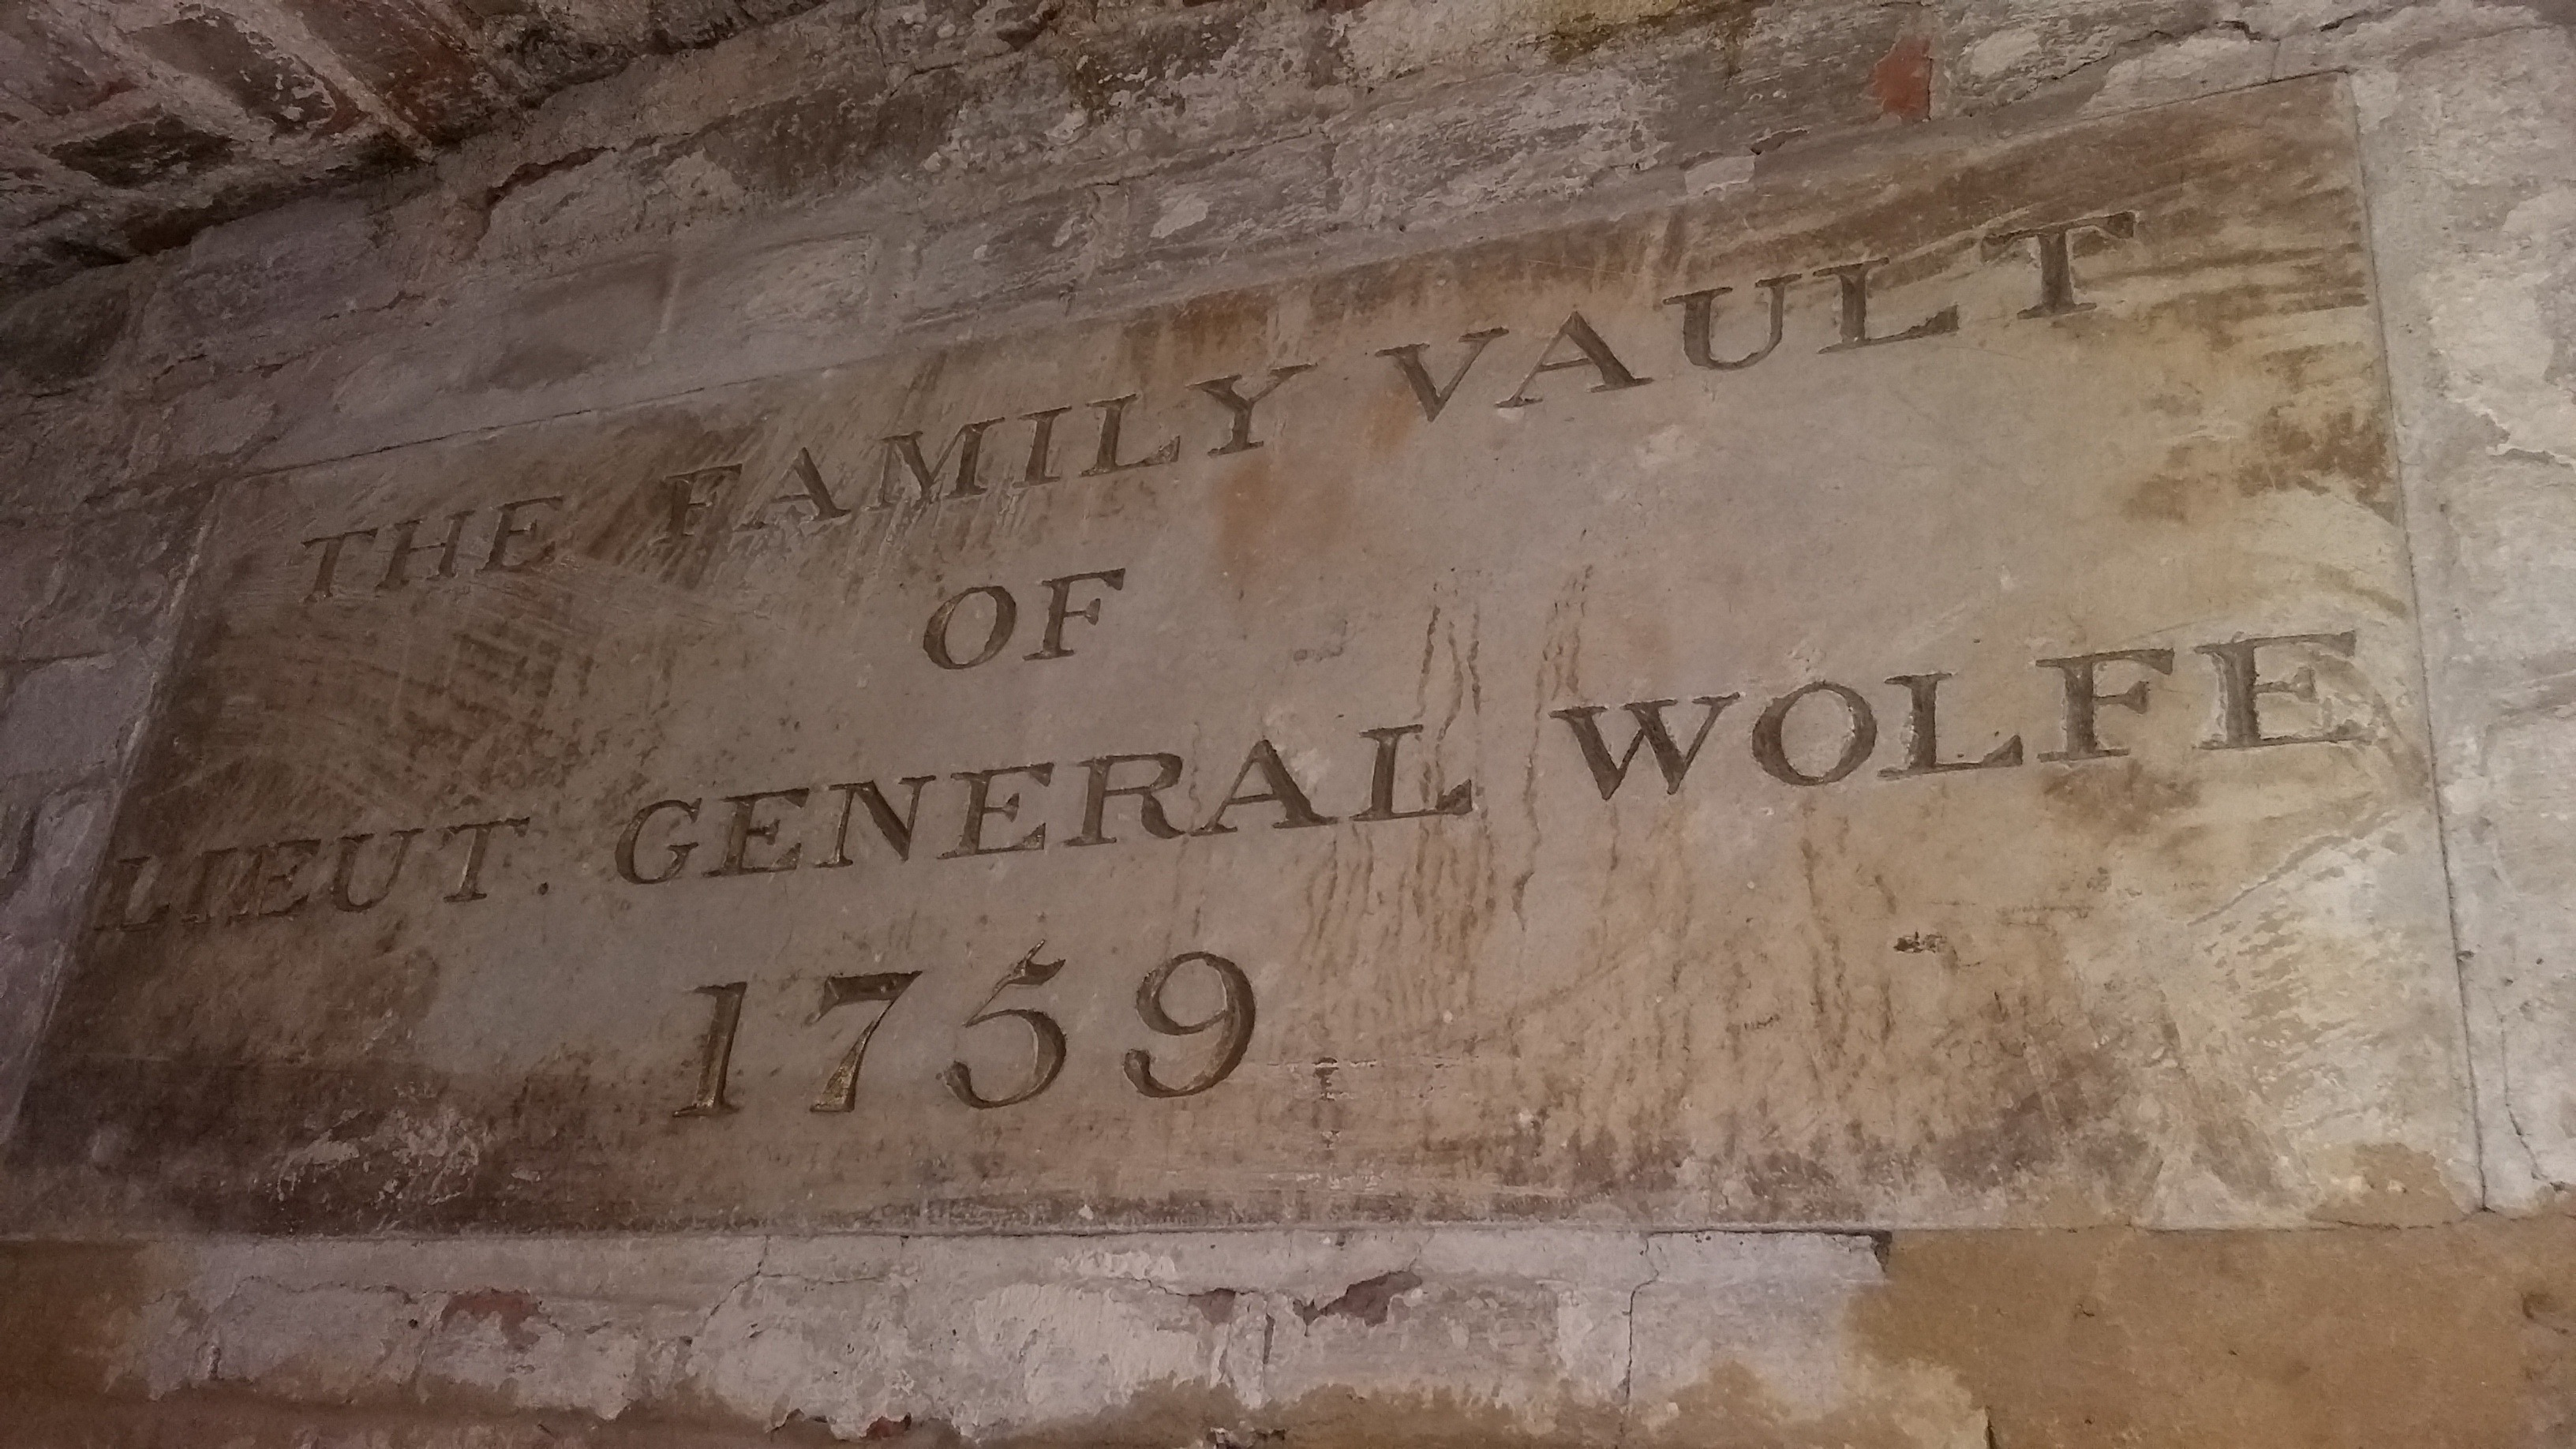 Vault of General Wolfe